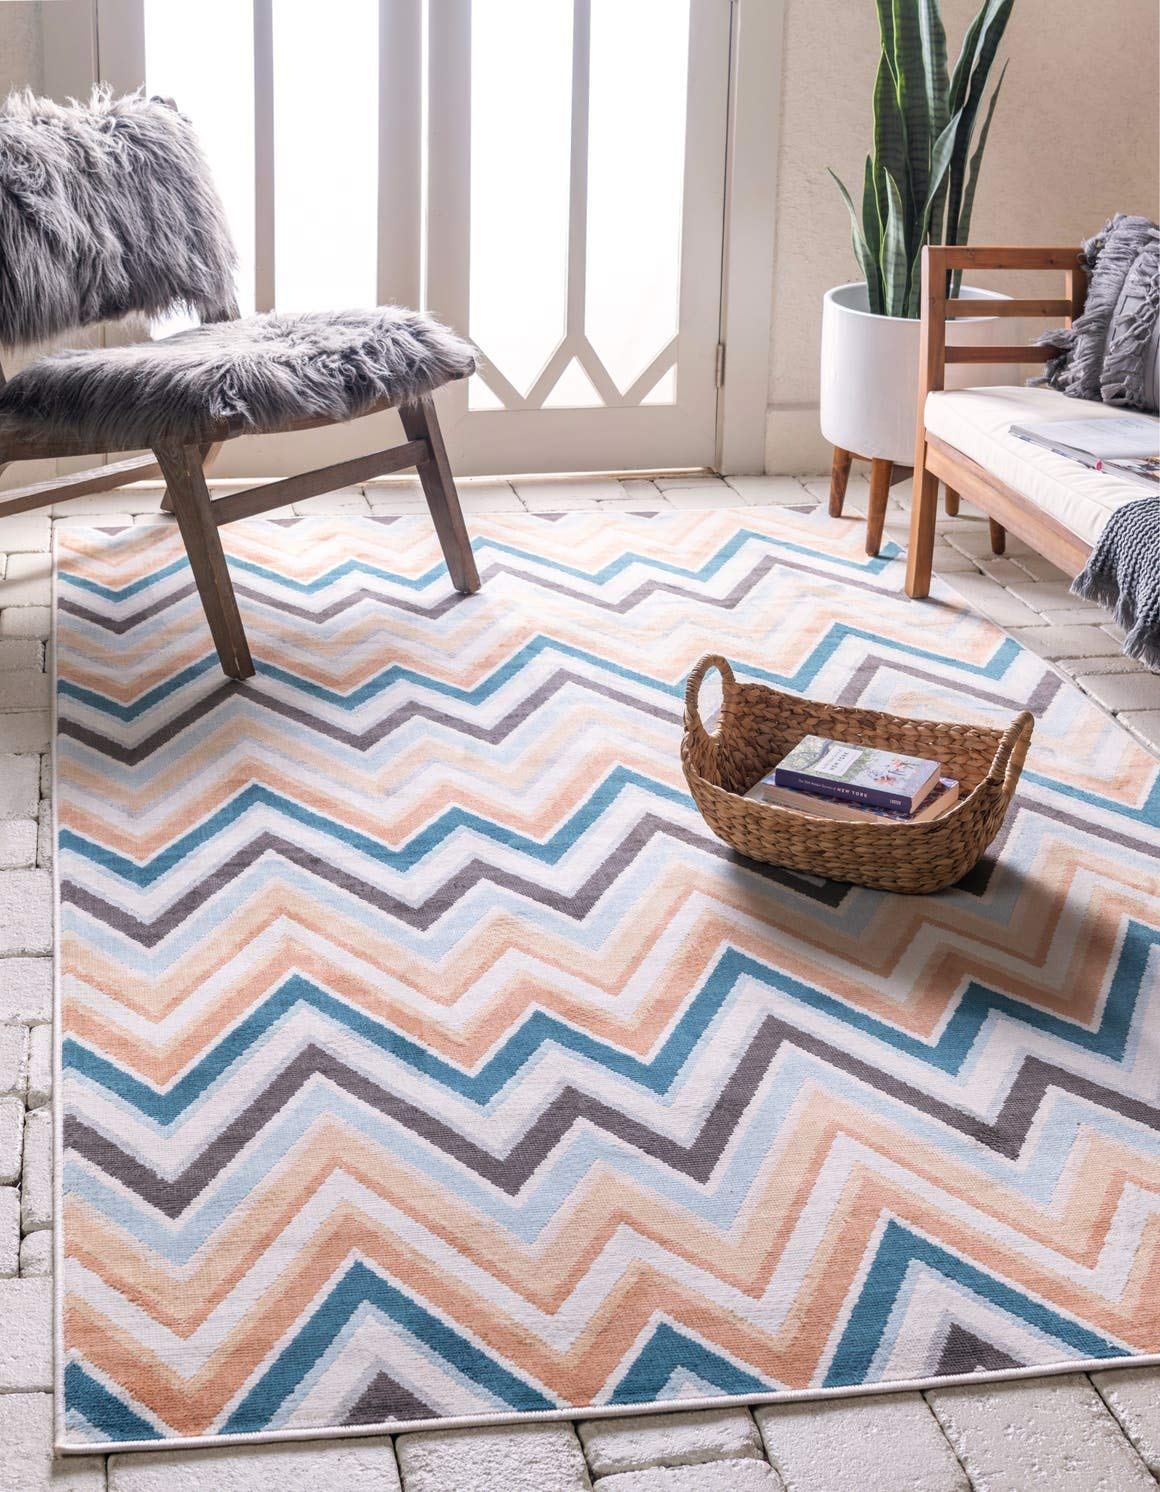 Unique Loom Outdoor Oasis Collection Casual Chevron Transitional Indoor and Outdoor Flatweave Multi Area Rug 4 0 x 6 0